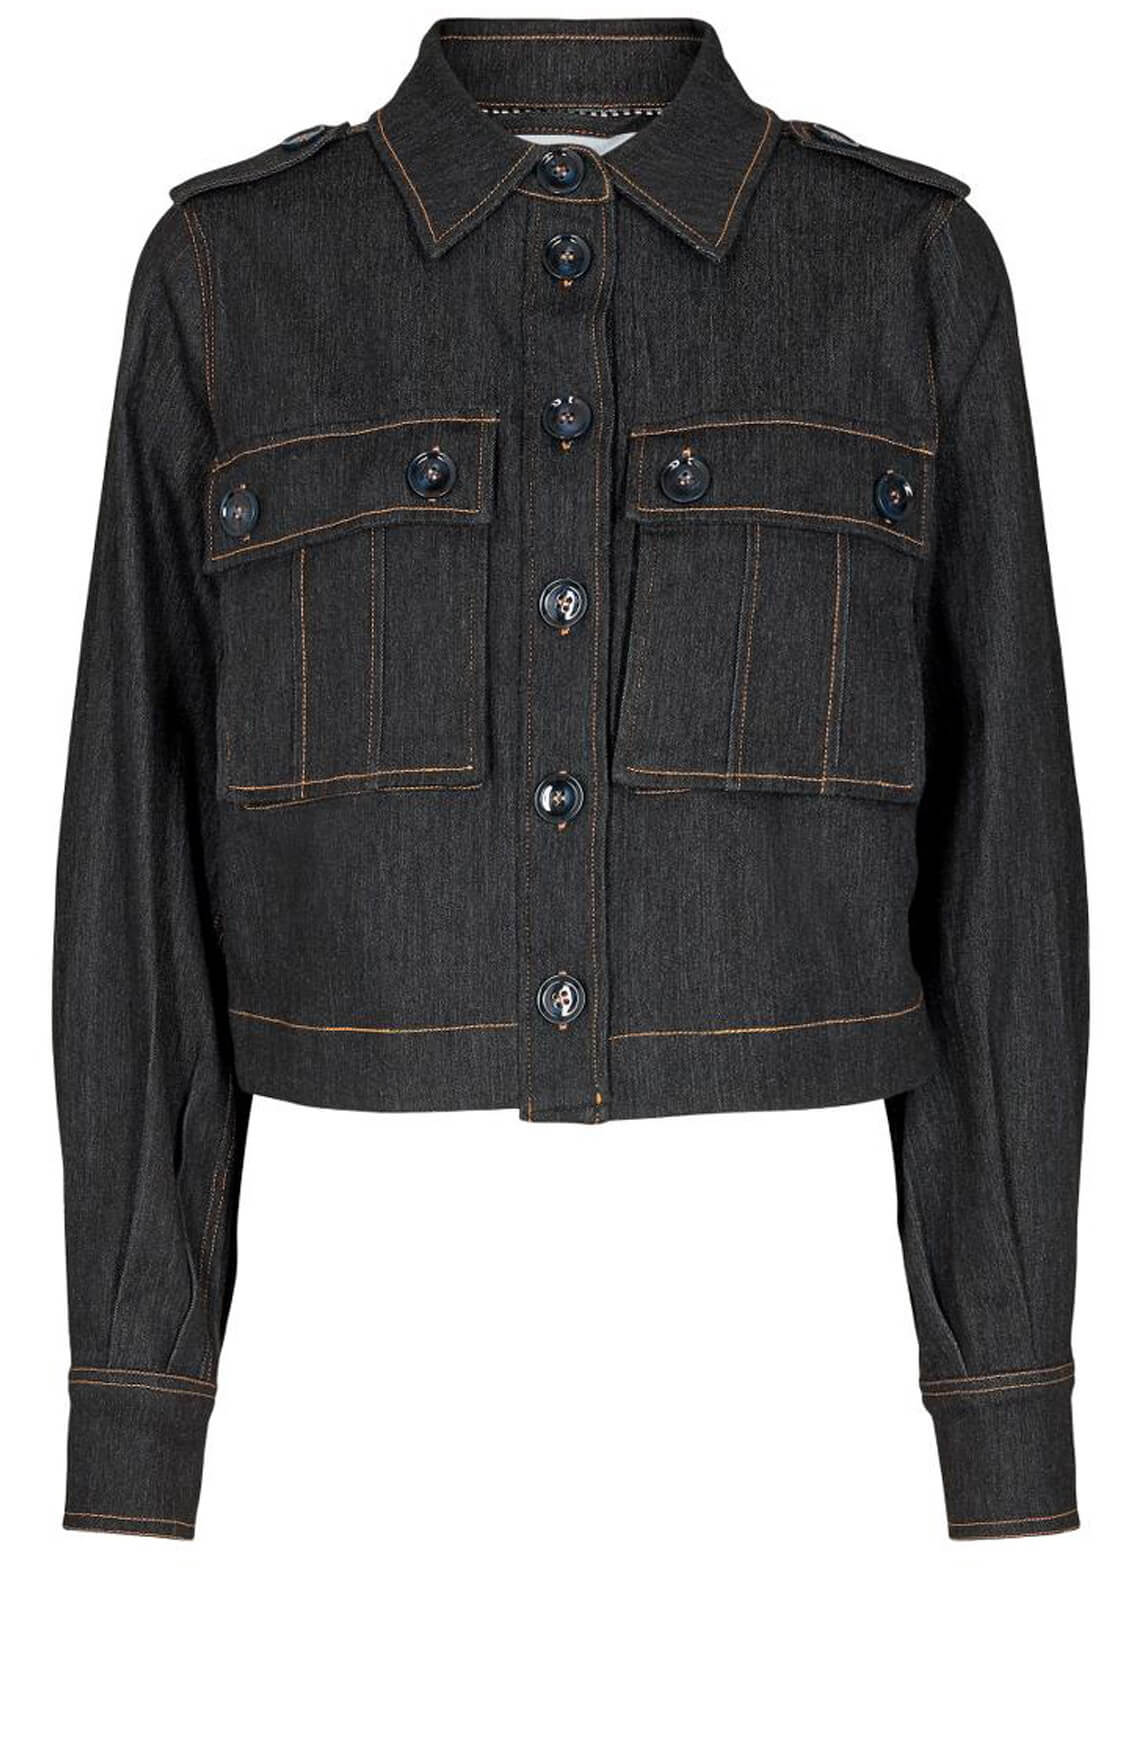 Co Couture Dames Ibbie denim jack Blauw